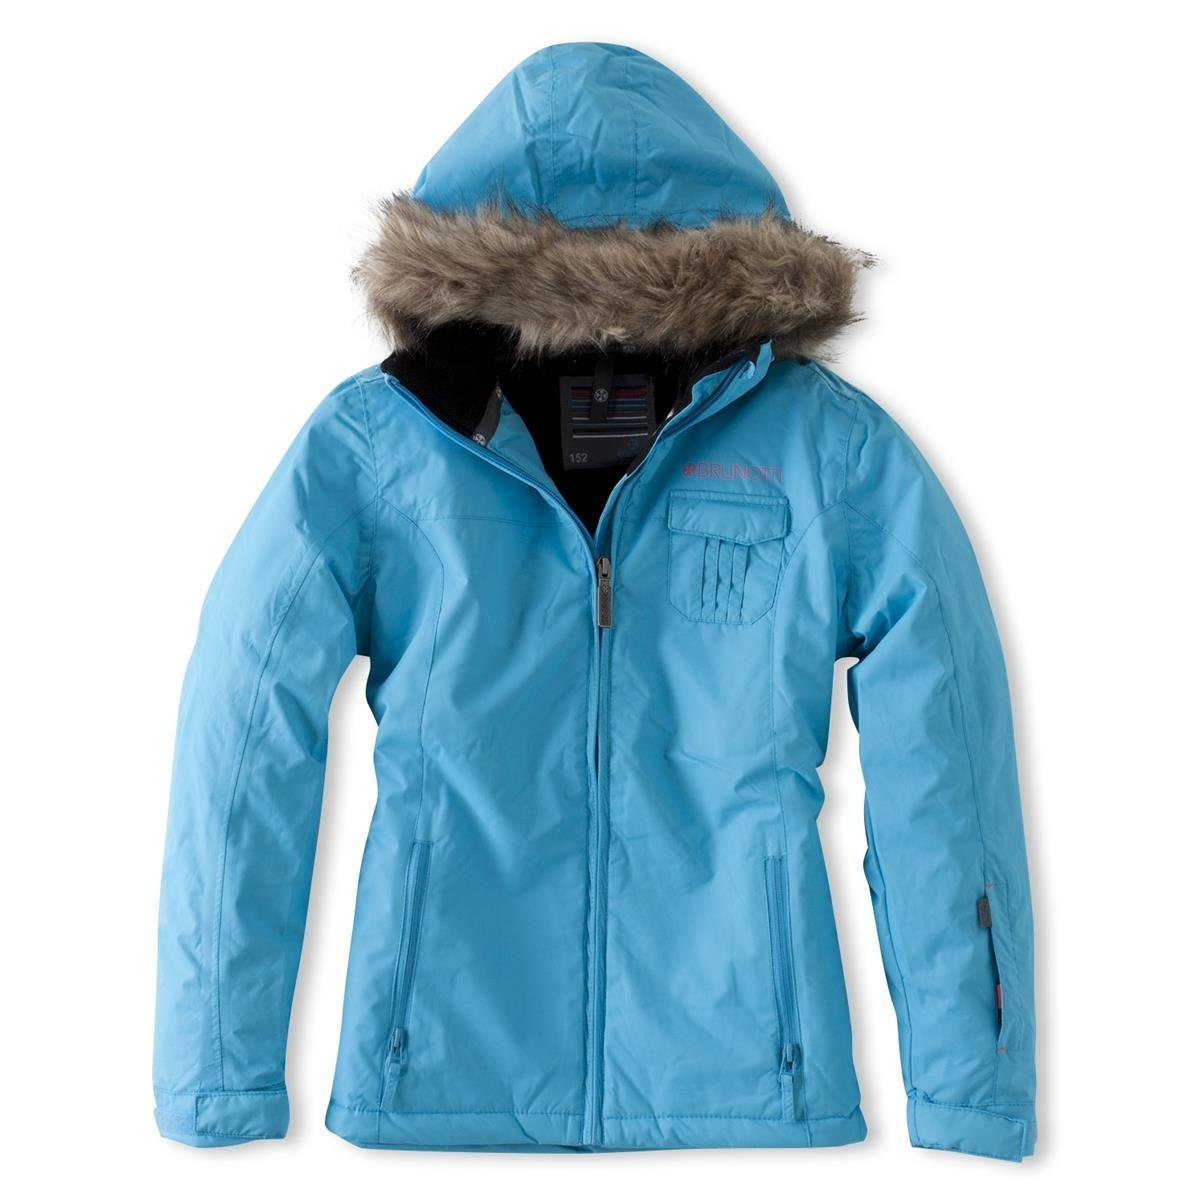 Brunotti Jalis Girls Jacket Kinderjacke hellblau (regatta) (176) kaufen